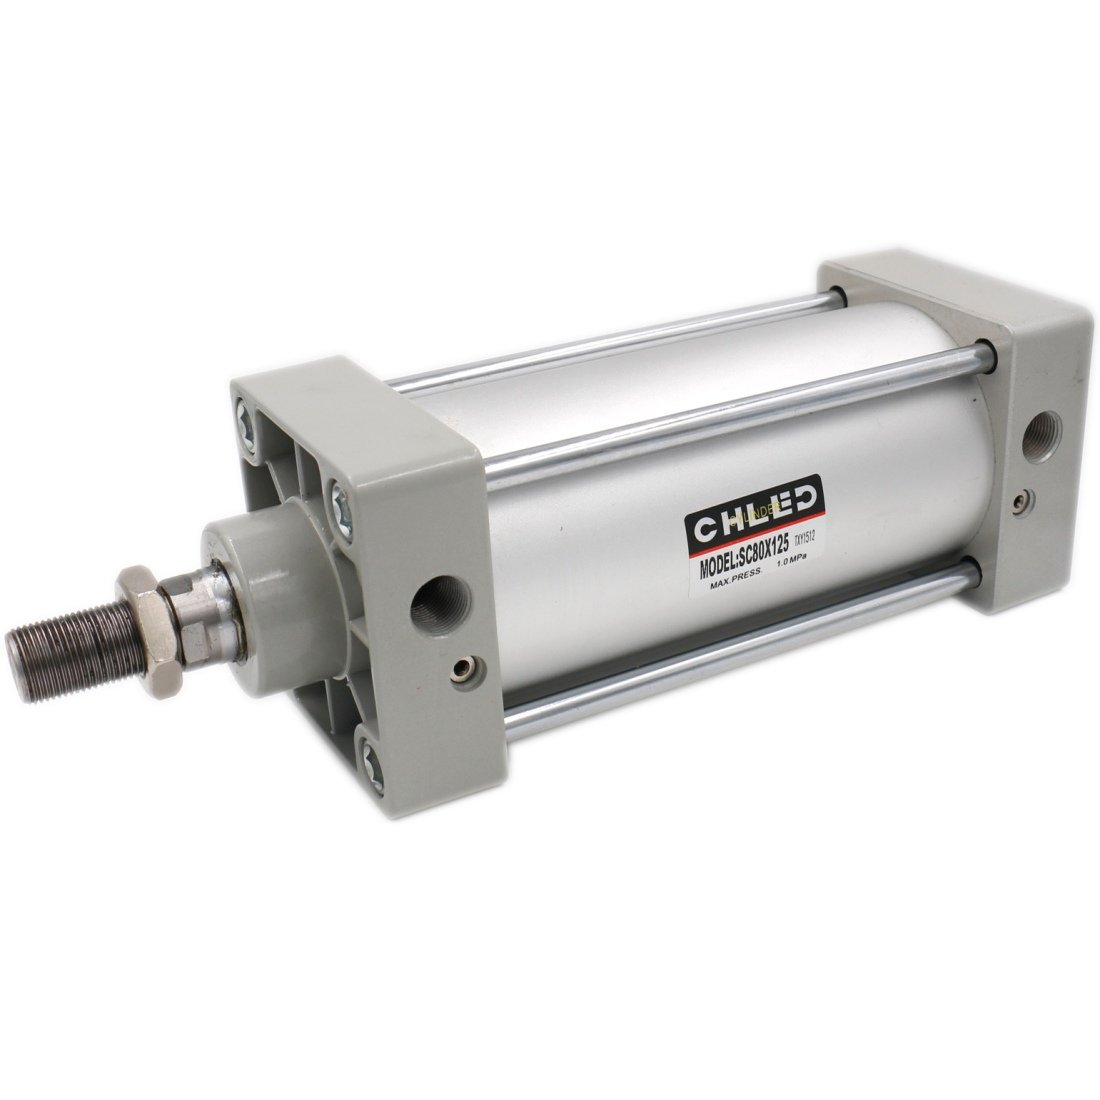 Baomain Pneumatic Air Cylinder SC 80 x 150 PT 3/8, Bore: 80mm, Stroke: 150mm, Screwed Piston Rod Dual Action 1 Mpa